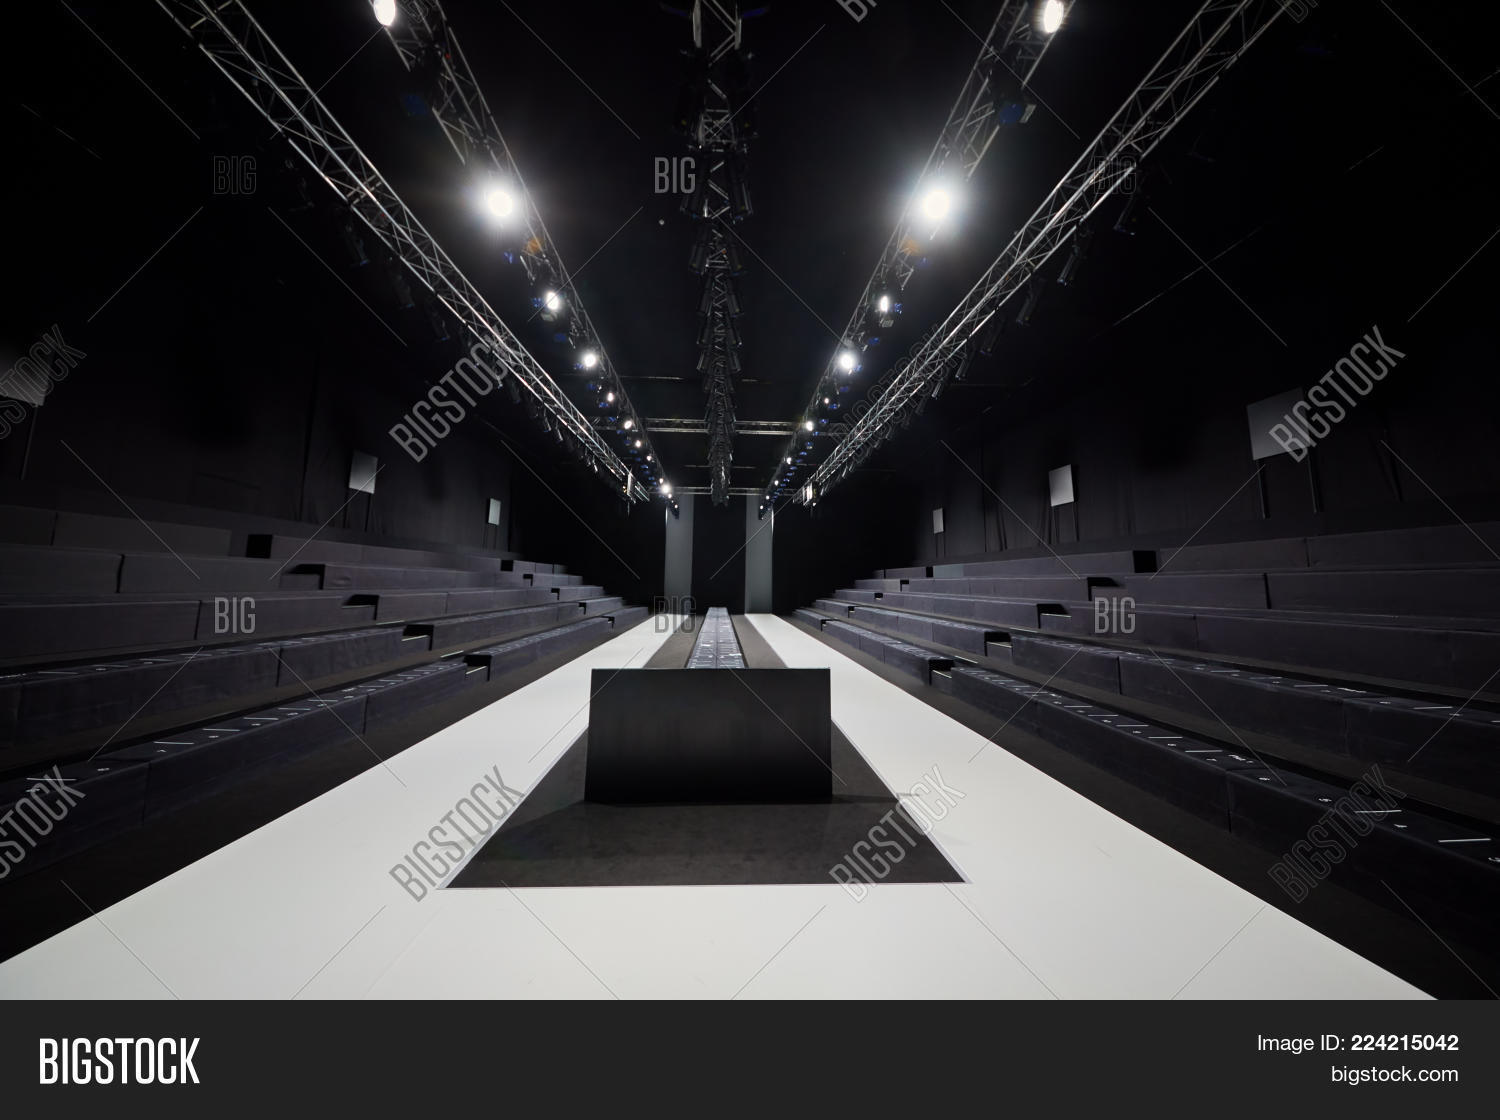 Stupendous Empty Hall Fashion Image Photo Free Trial Bigstock Alphanode Cool Chair Designs And Ideas Alphanodeonline